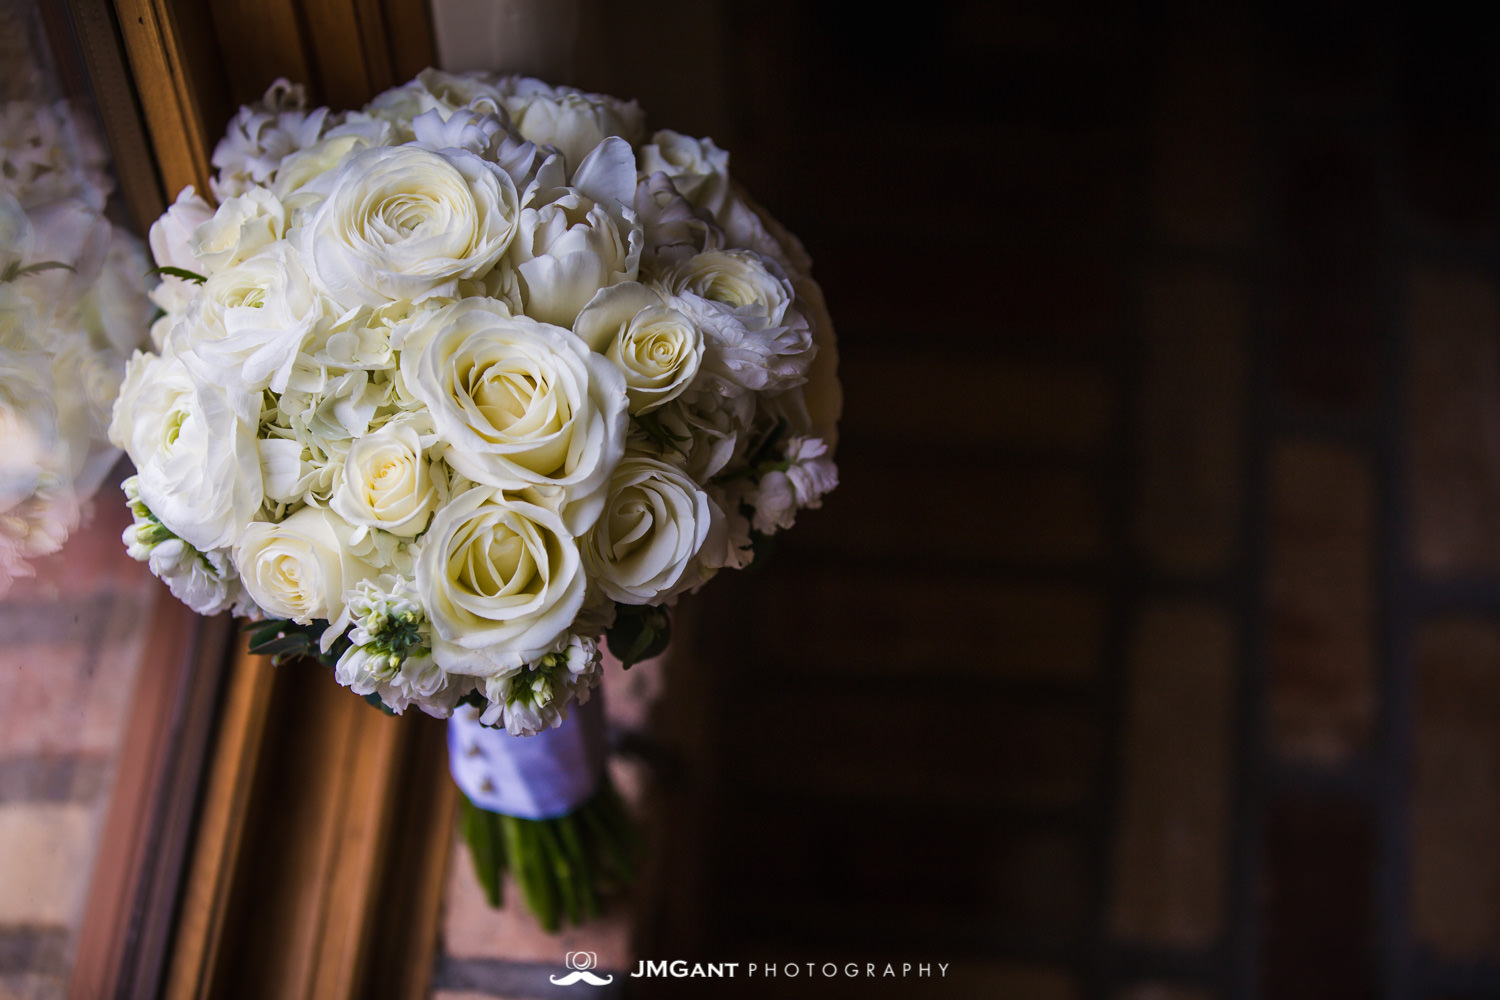 Bridal bouquet by floral designs of europe at an elegant wedding at the Della Terra Mountain Chateau in Estes Park Colorado. Photographed by Jared M. Gant of JMGant Photography.